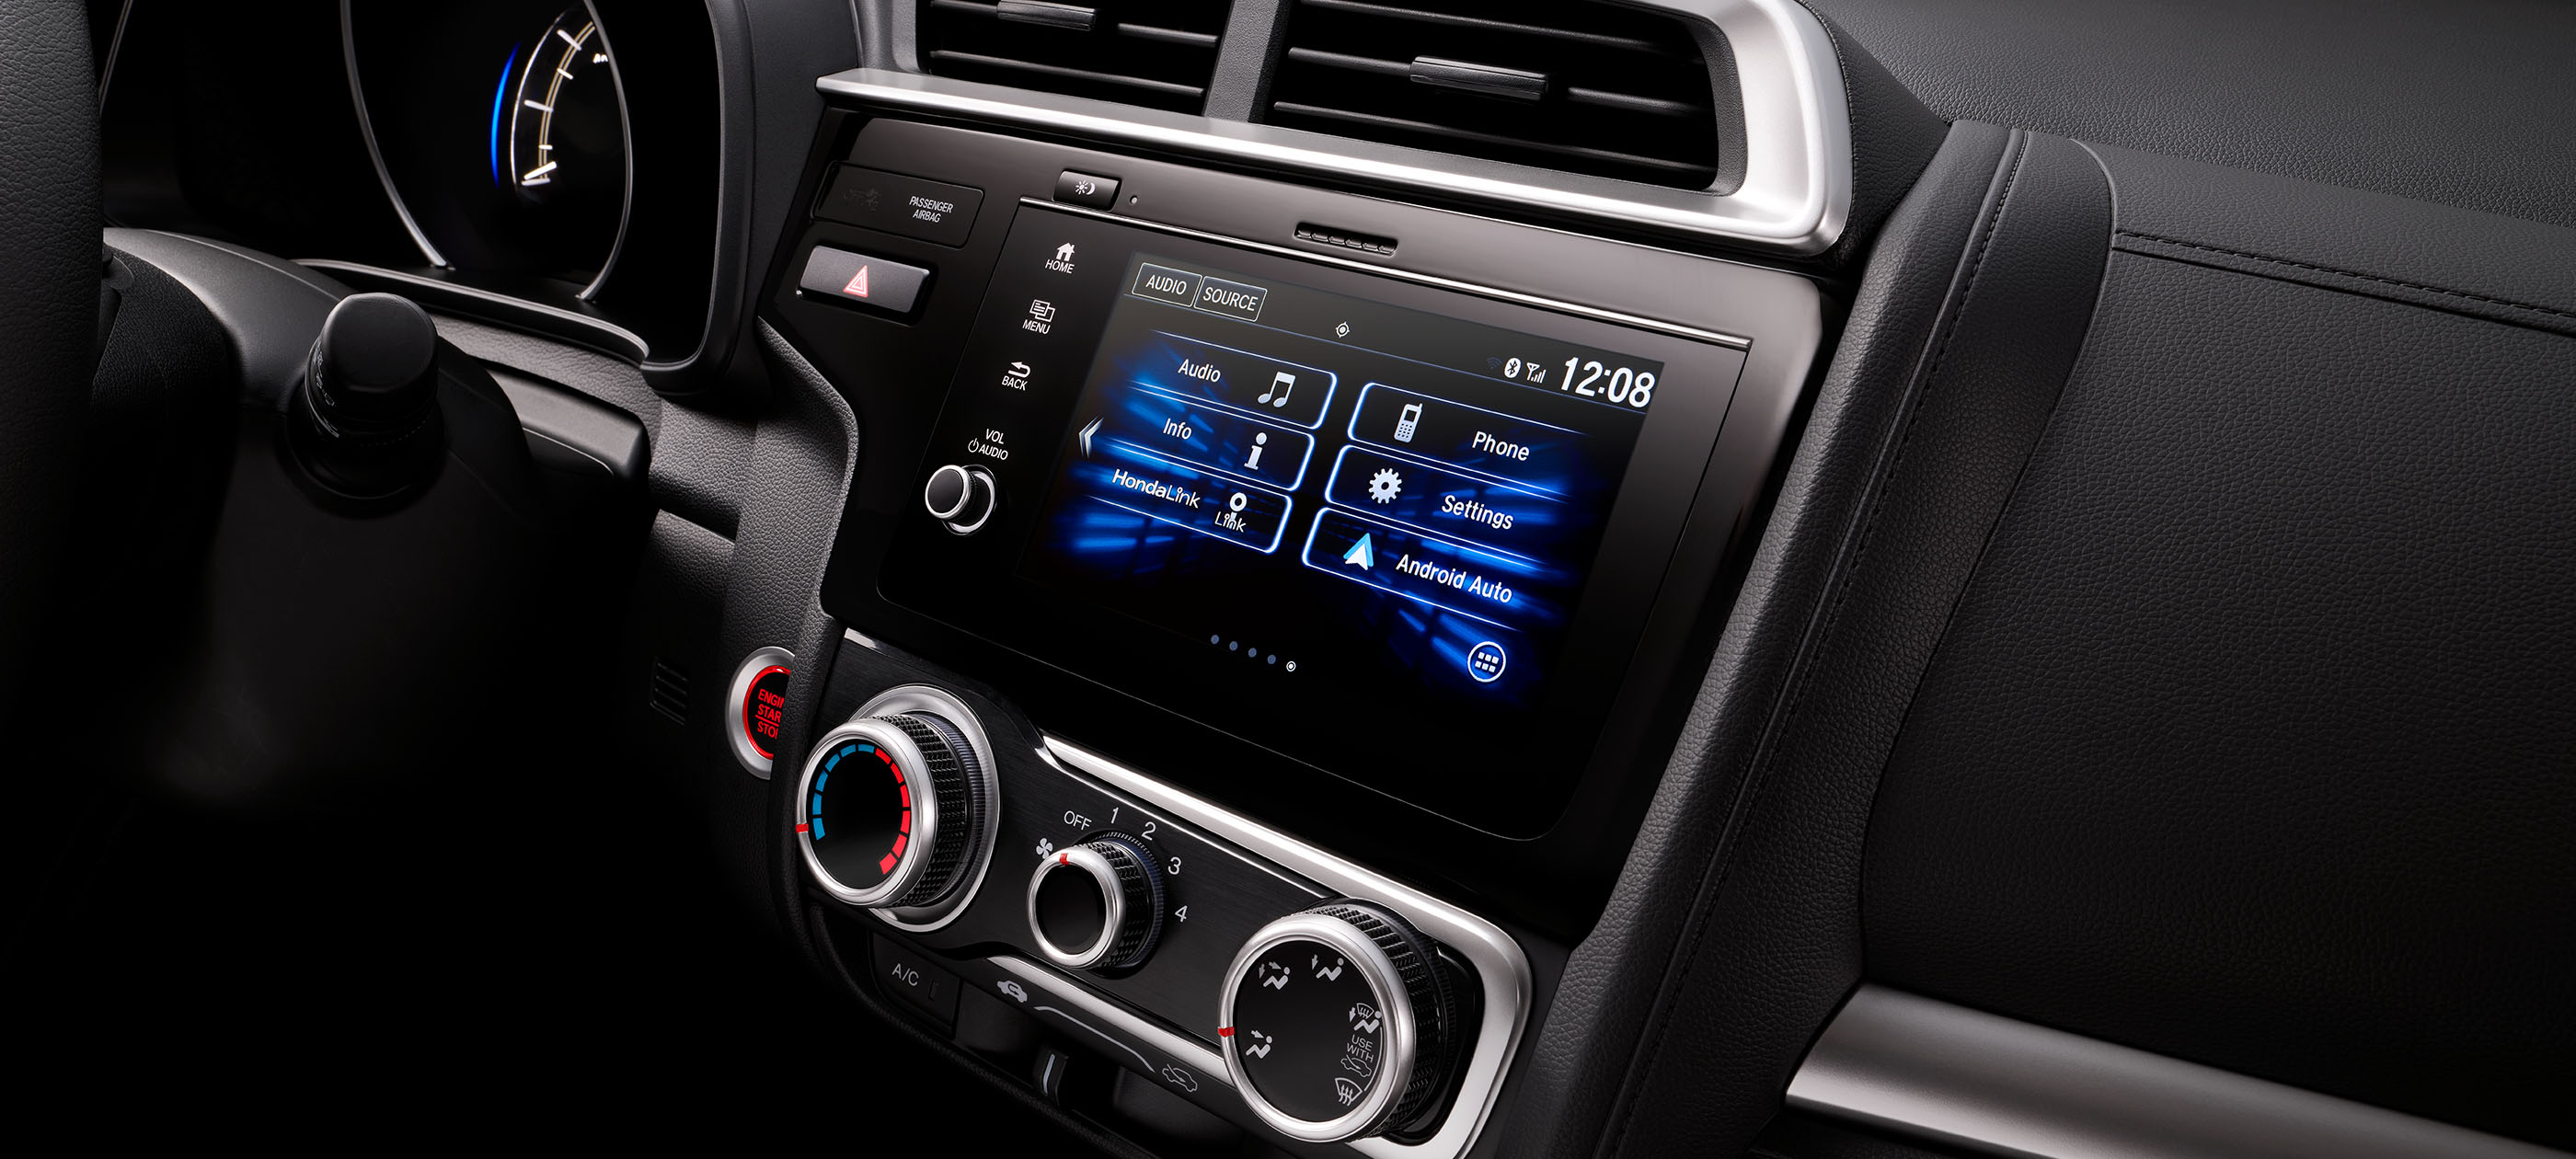 Android Auto™ detail on Display Audio touch-screen in 2019 Honda Fit Sport CVT with black interior.